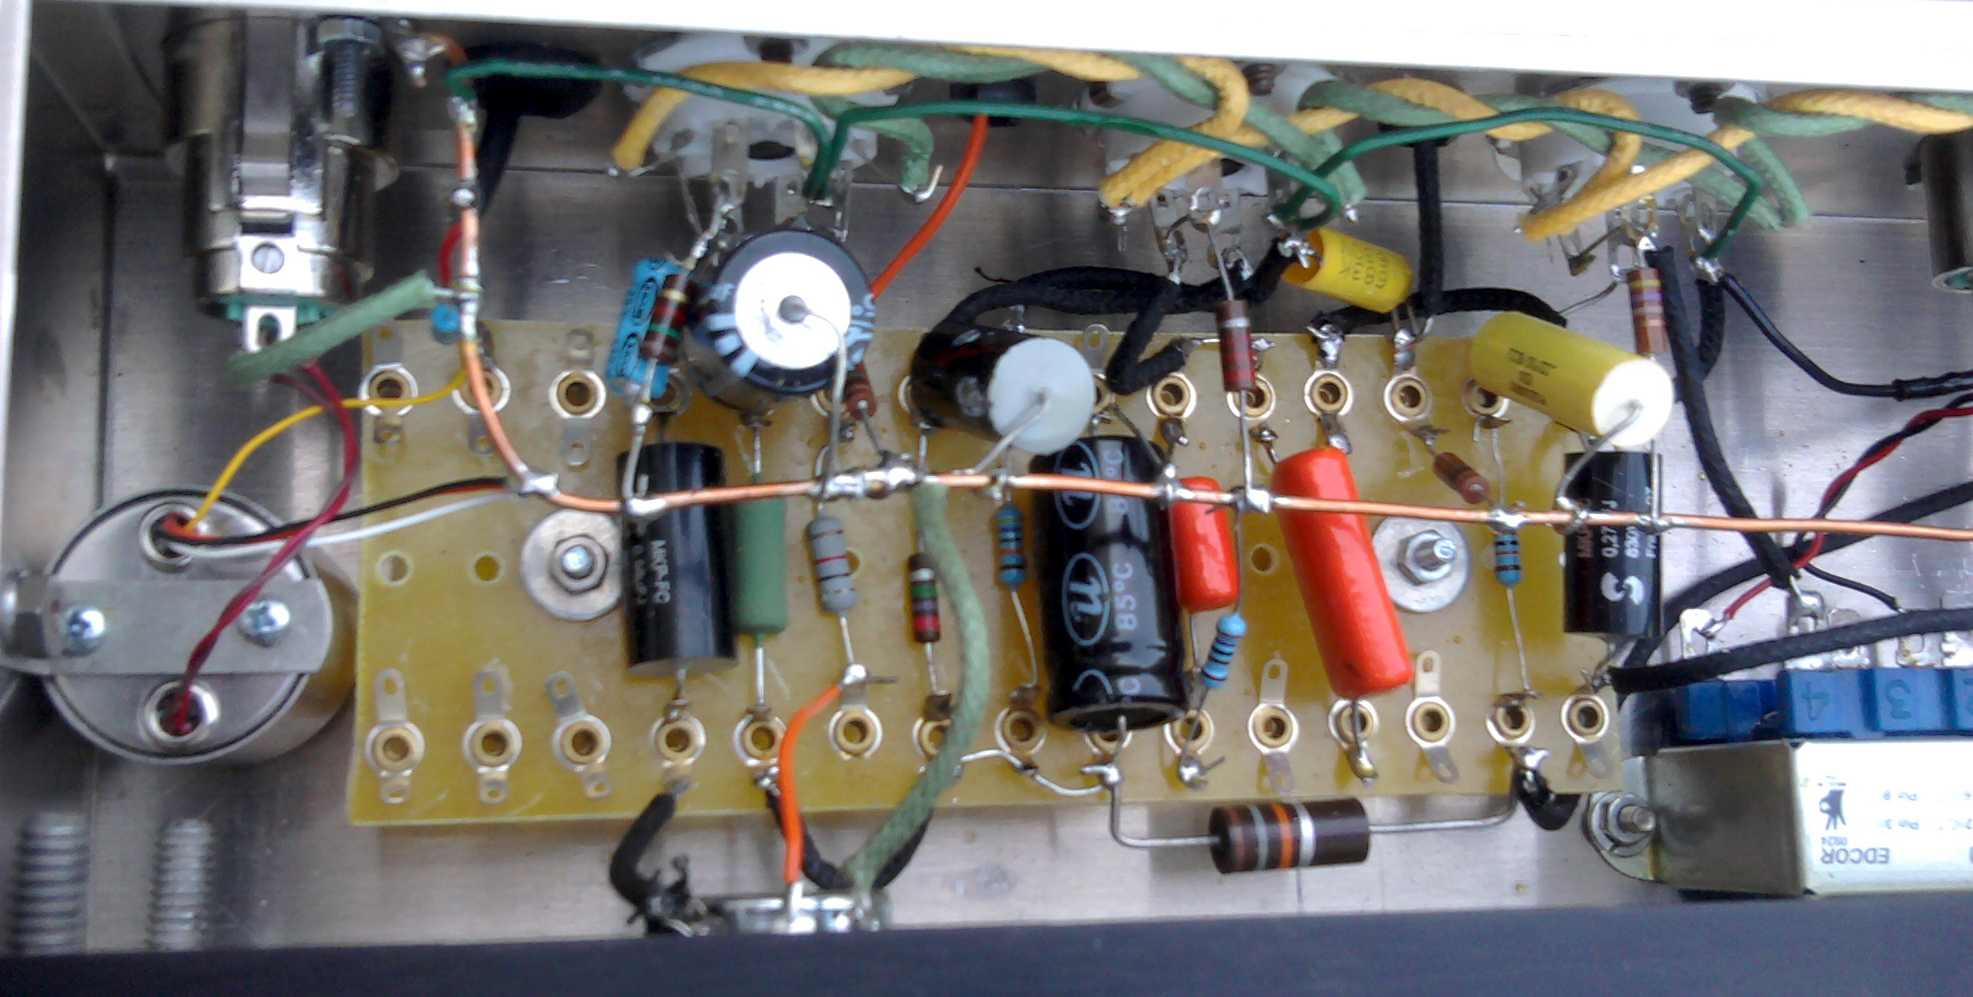 Building An Almost Rca Op6 Mic Preamp Preservation Sound Power Wiring Diagram The Audio Portion Of Circuit